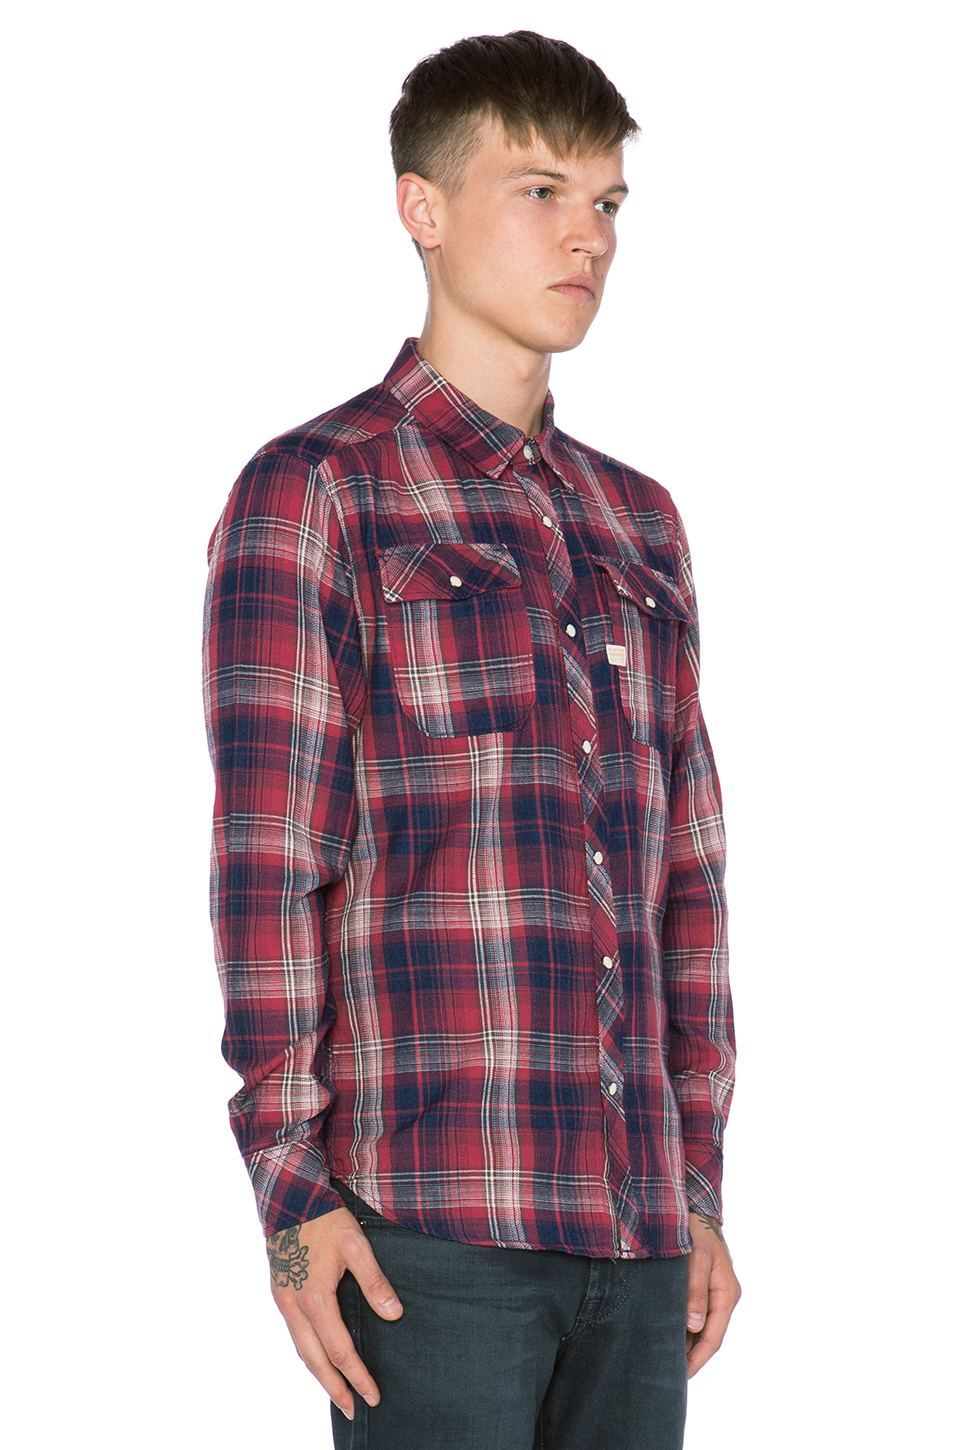 7896972cd76 G-Star RAW Landoh Indigo Vord Check Shirt in Red for Men - Lyst